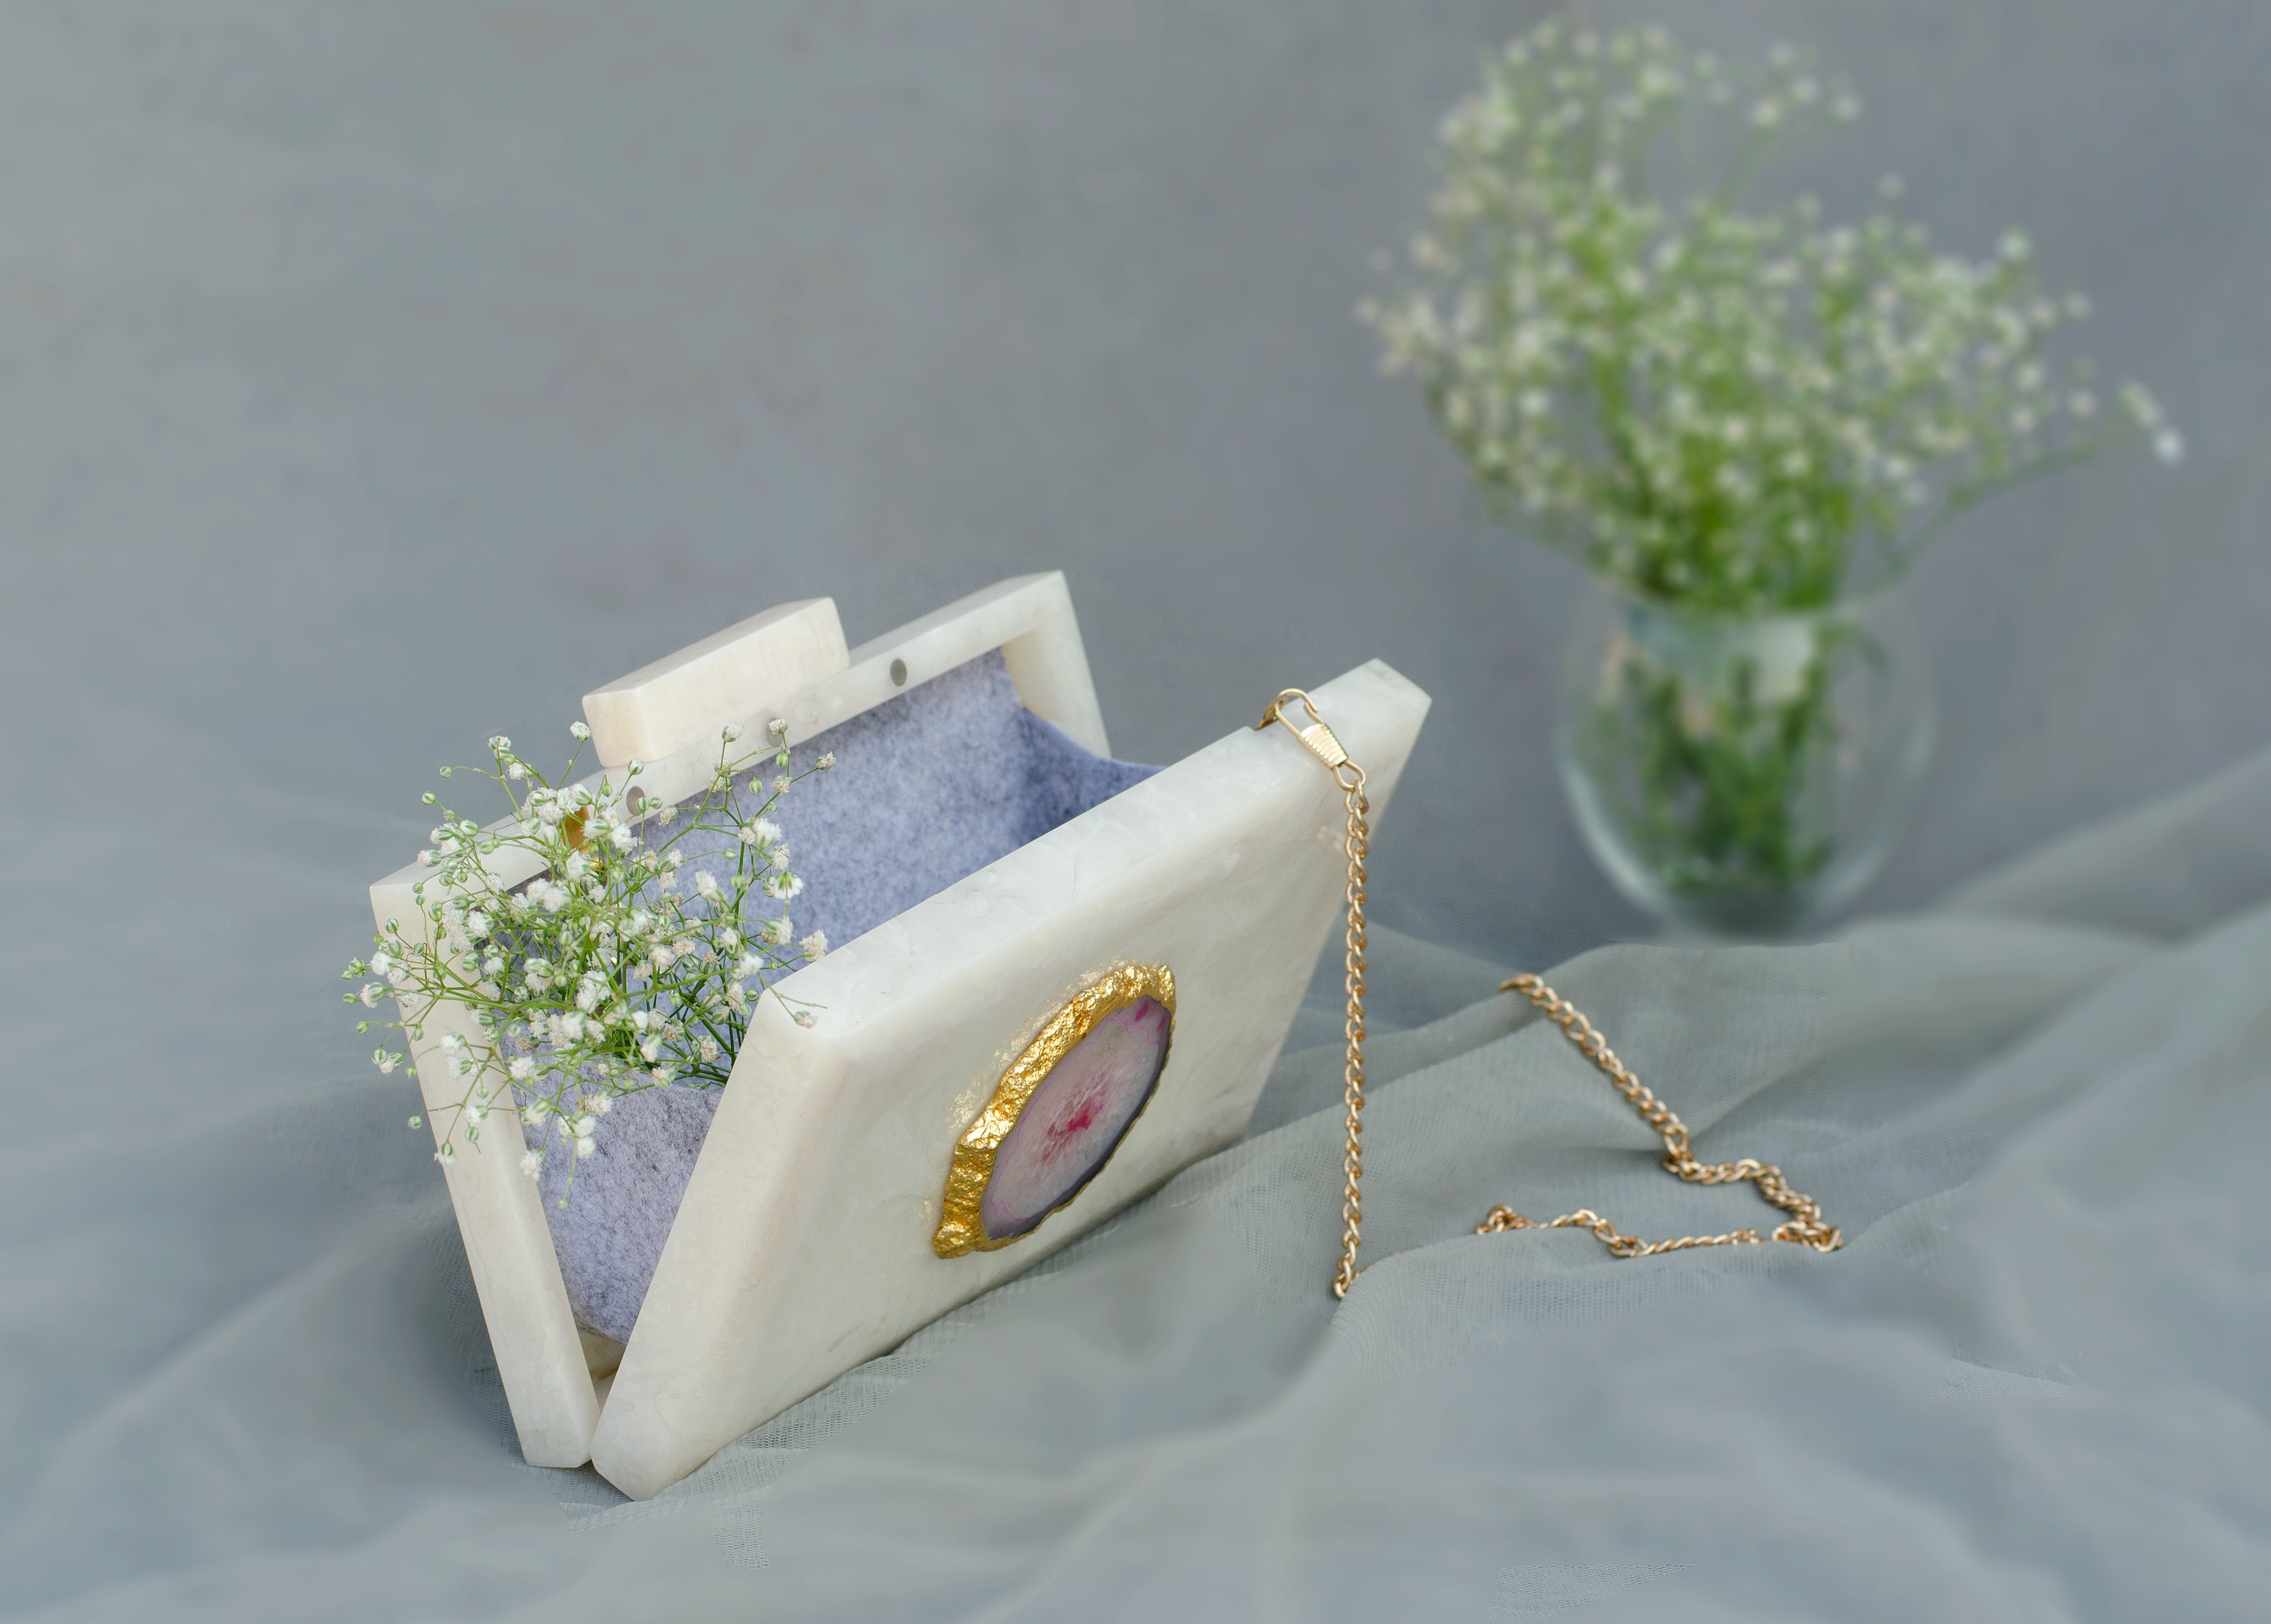 The White Baroque Rectangular Clutch - Pink Stone - SOUL EARTH